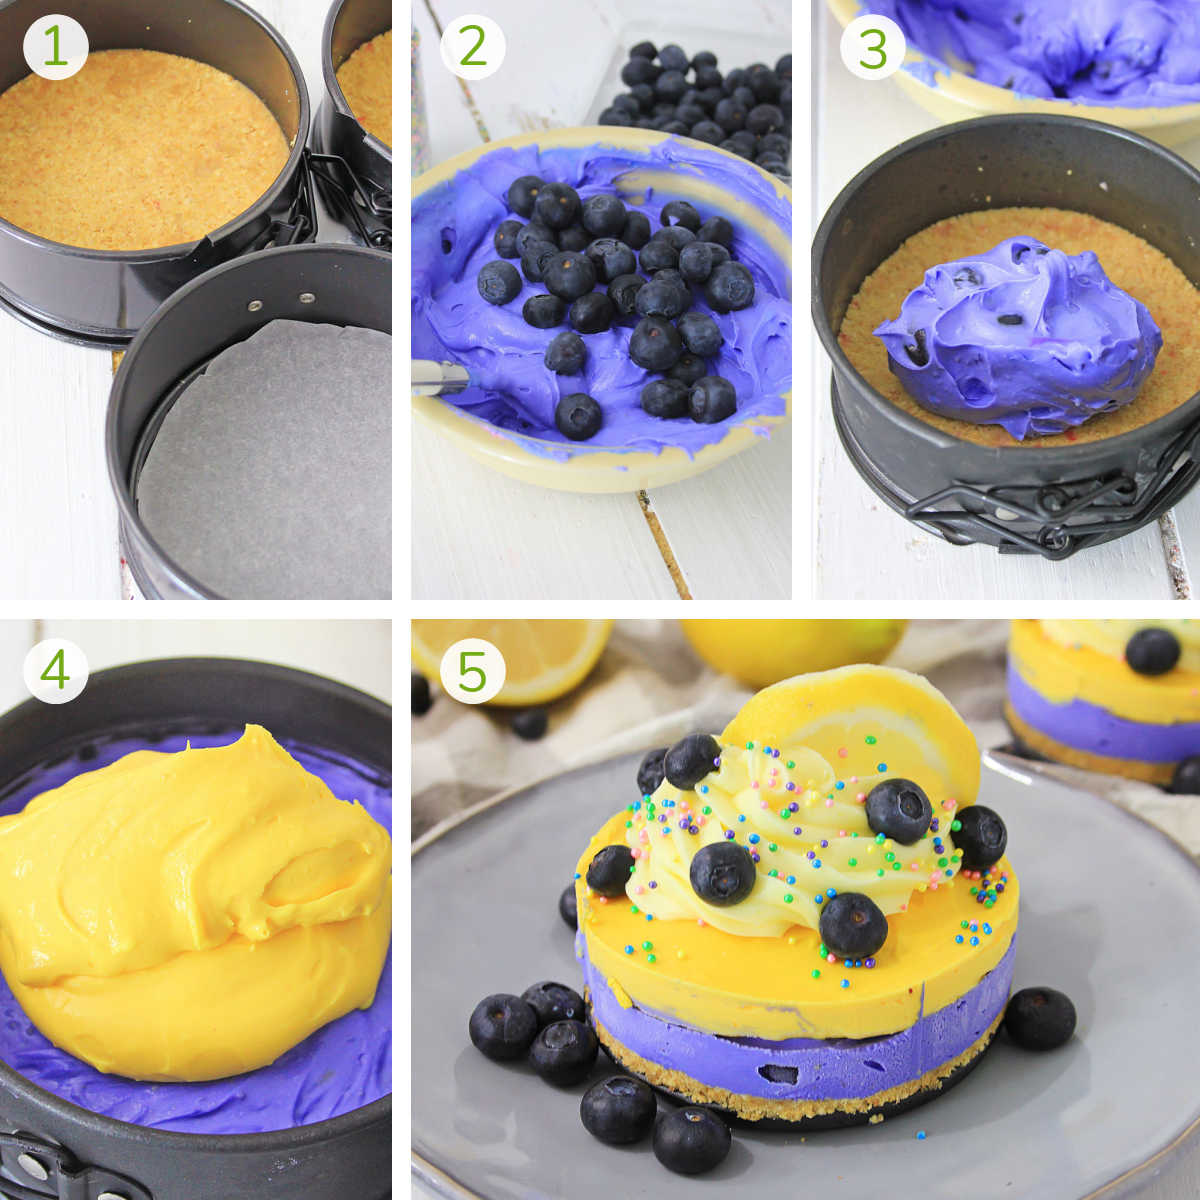 process shots showing the layering of the cheesecake and the final dessert.